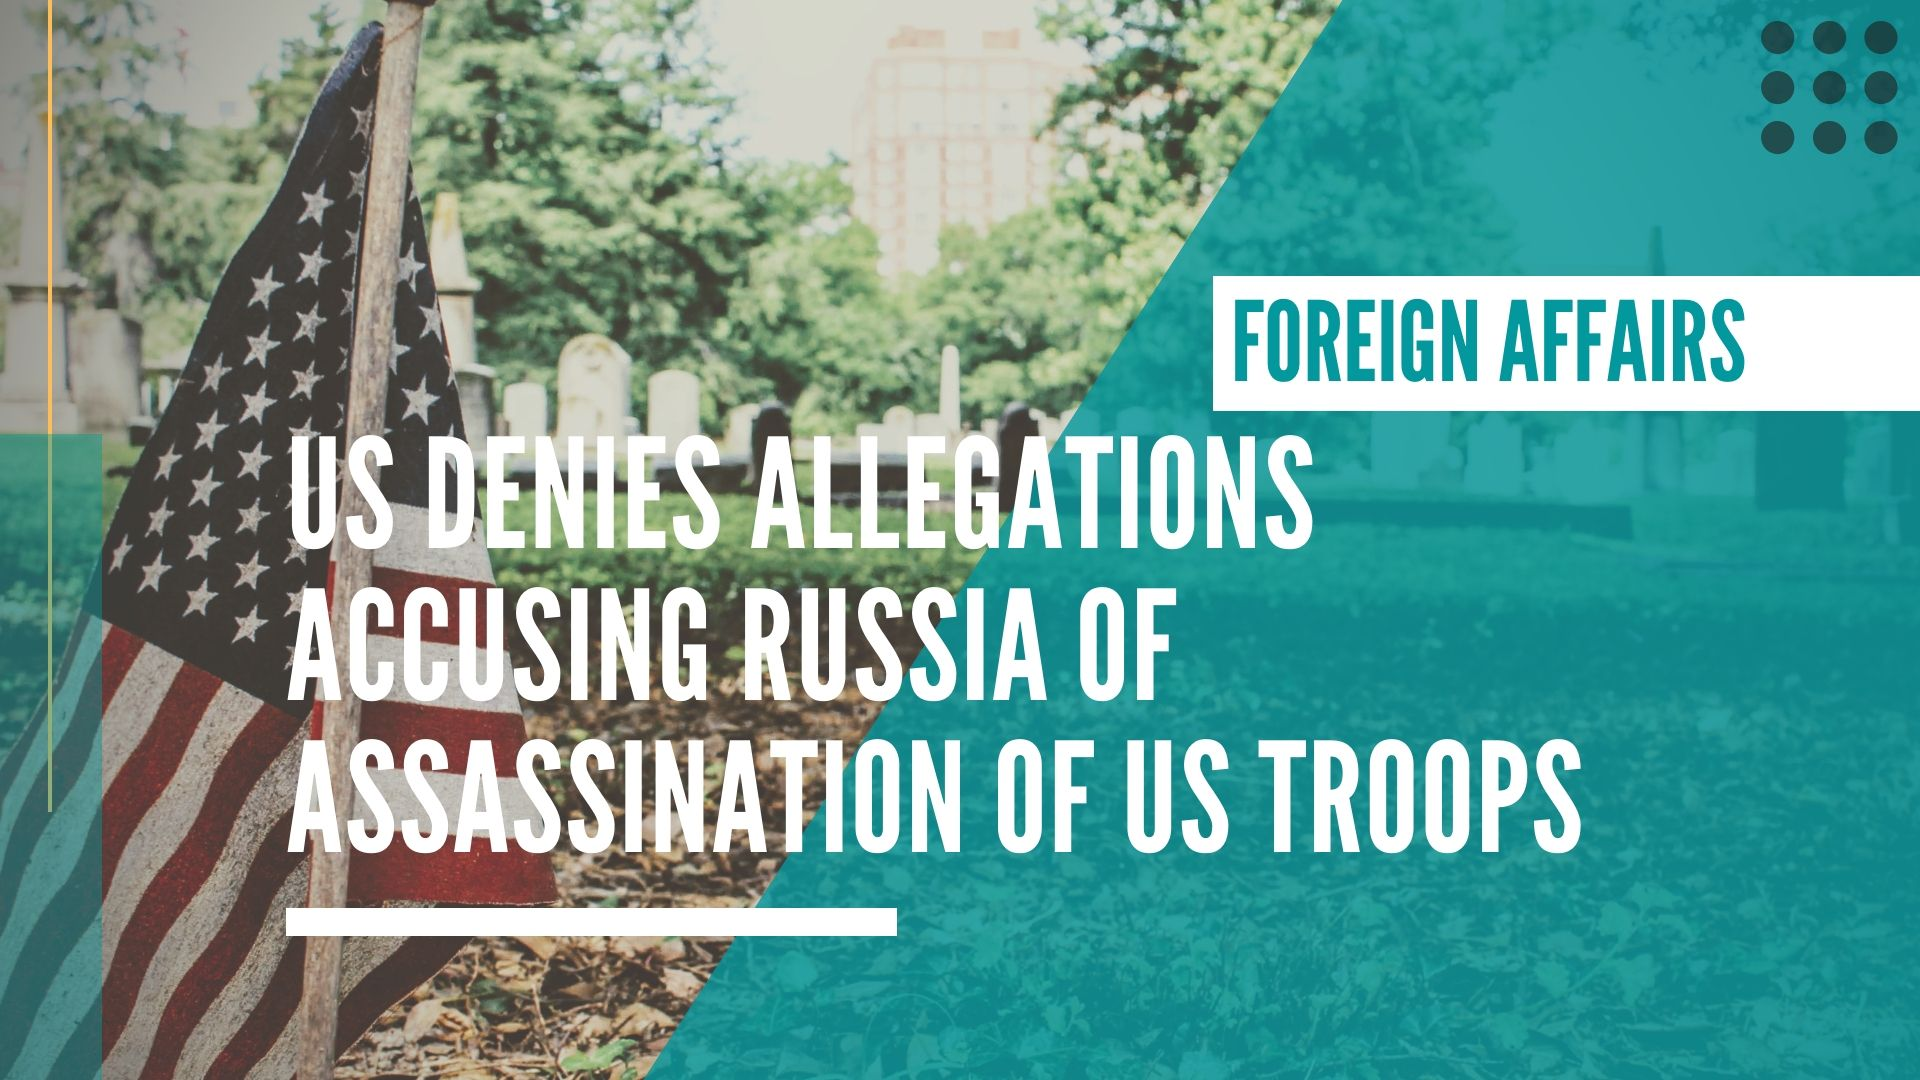 US denies allegations accusing Russia of participating in assassination of US troops in Afghanistan